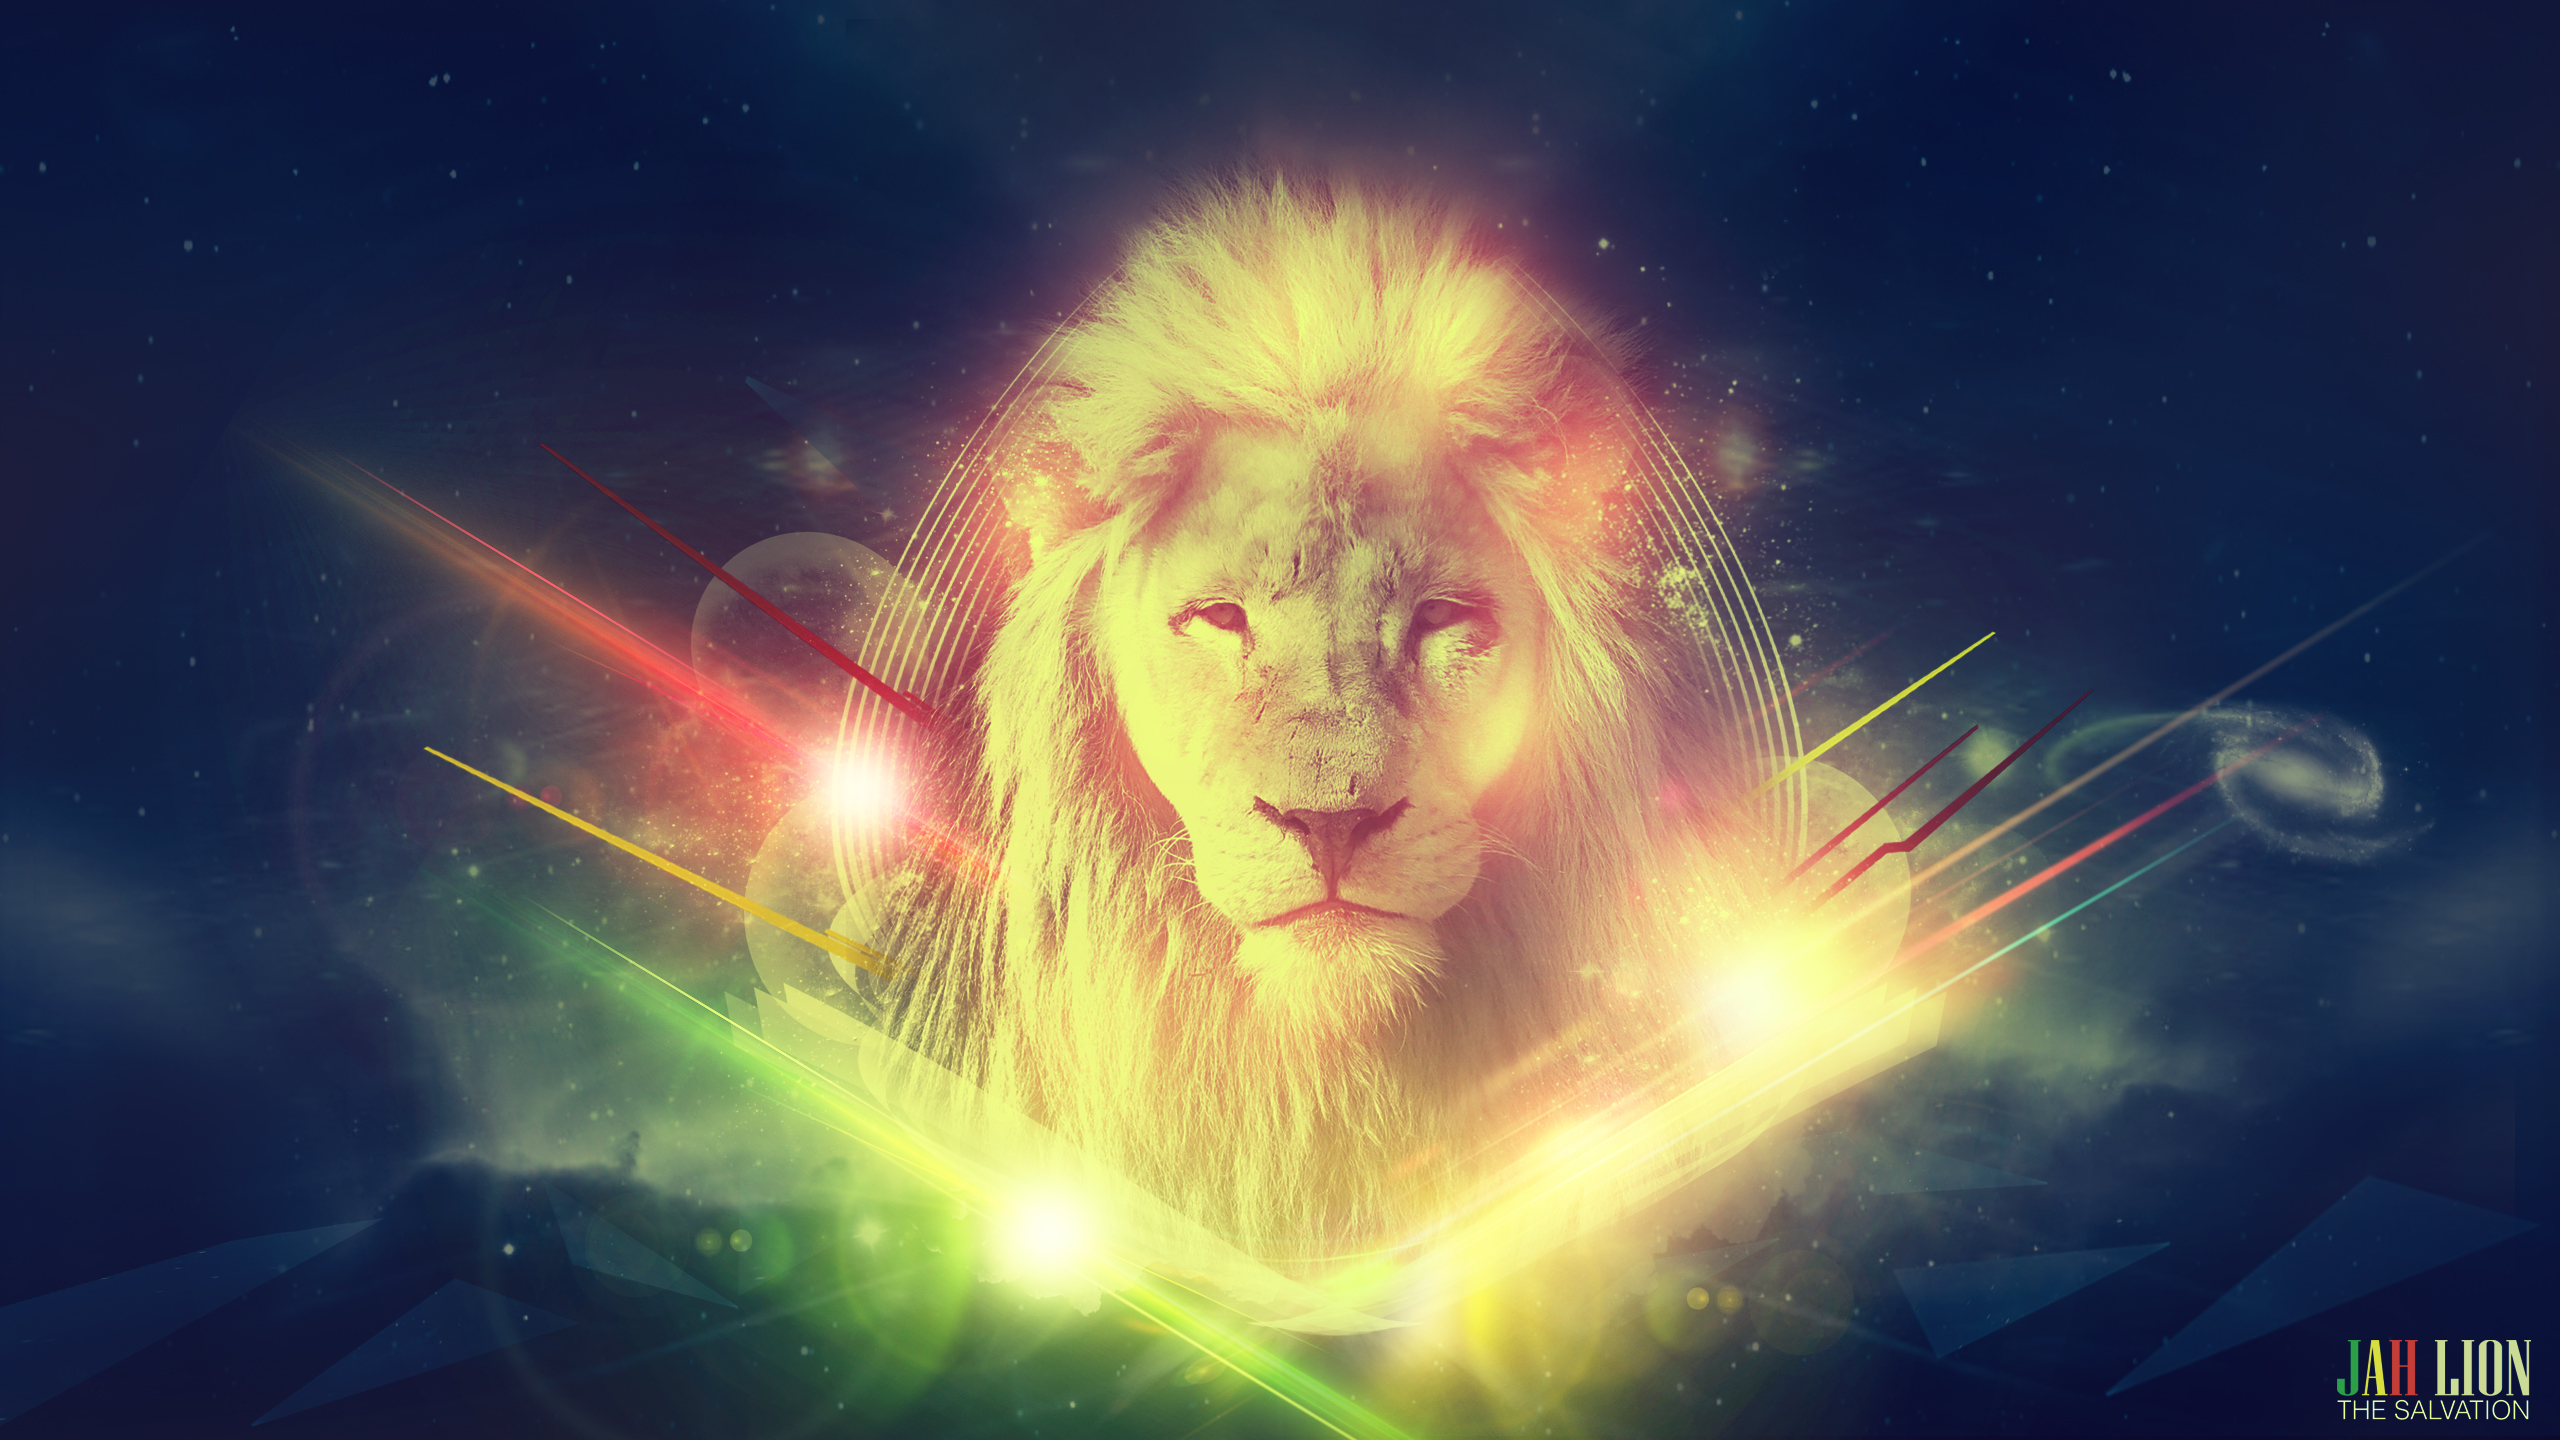 Bob Marley and Lion Wallpaper - WallpaperSafari